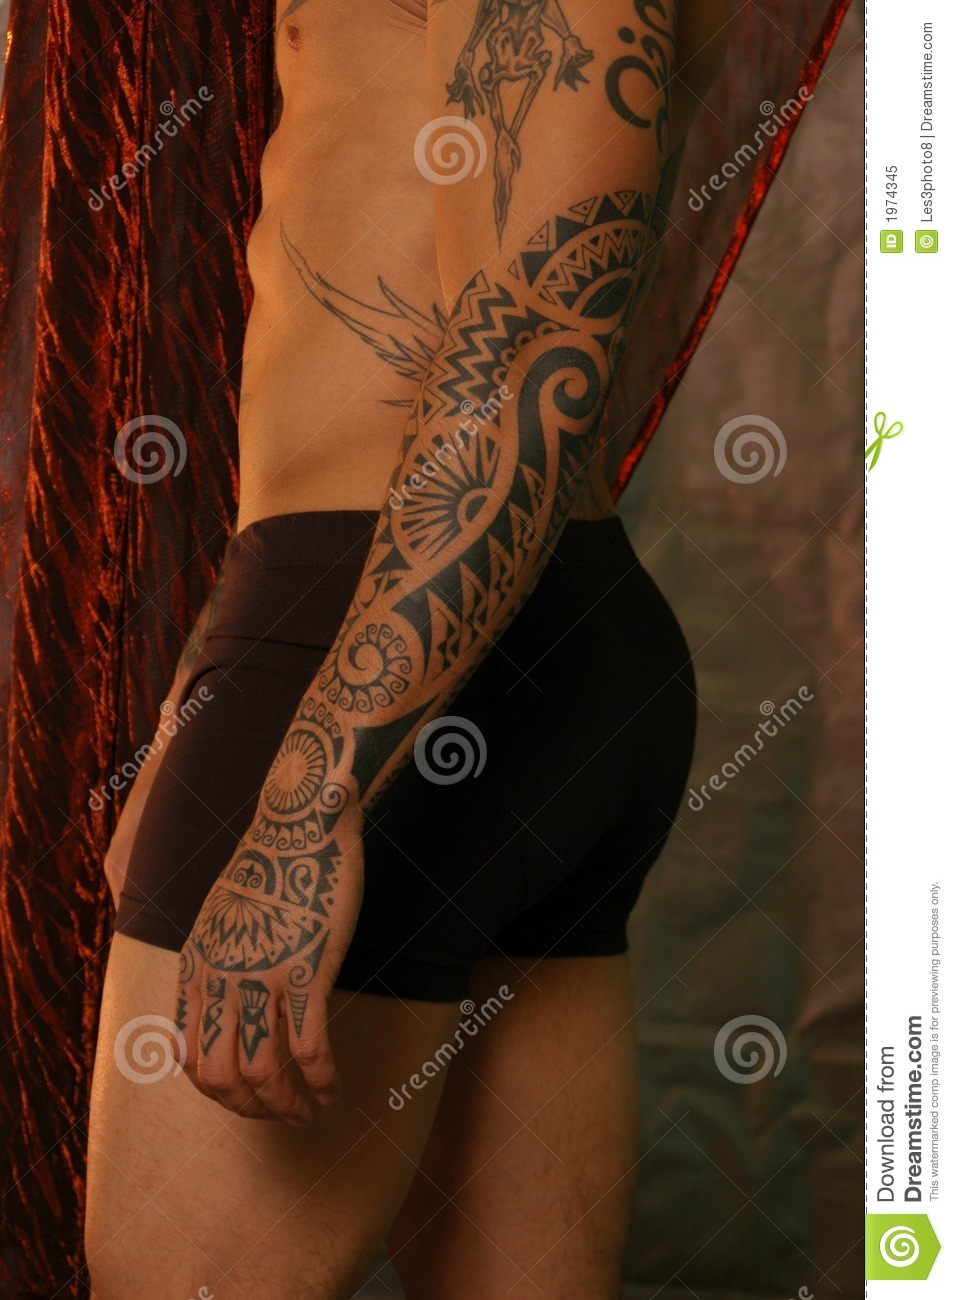 Male with a dragon tattoo and tattoos on his hand